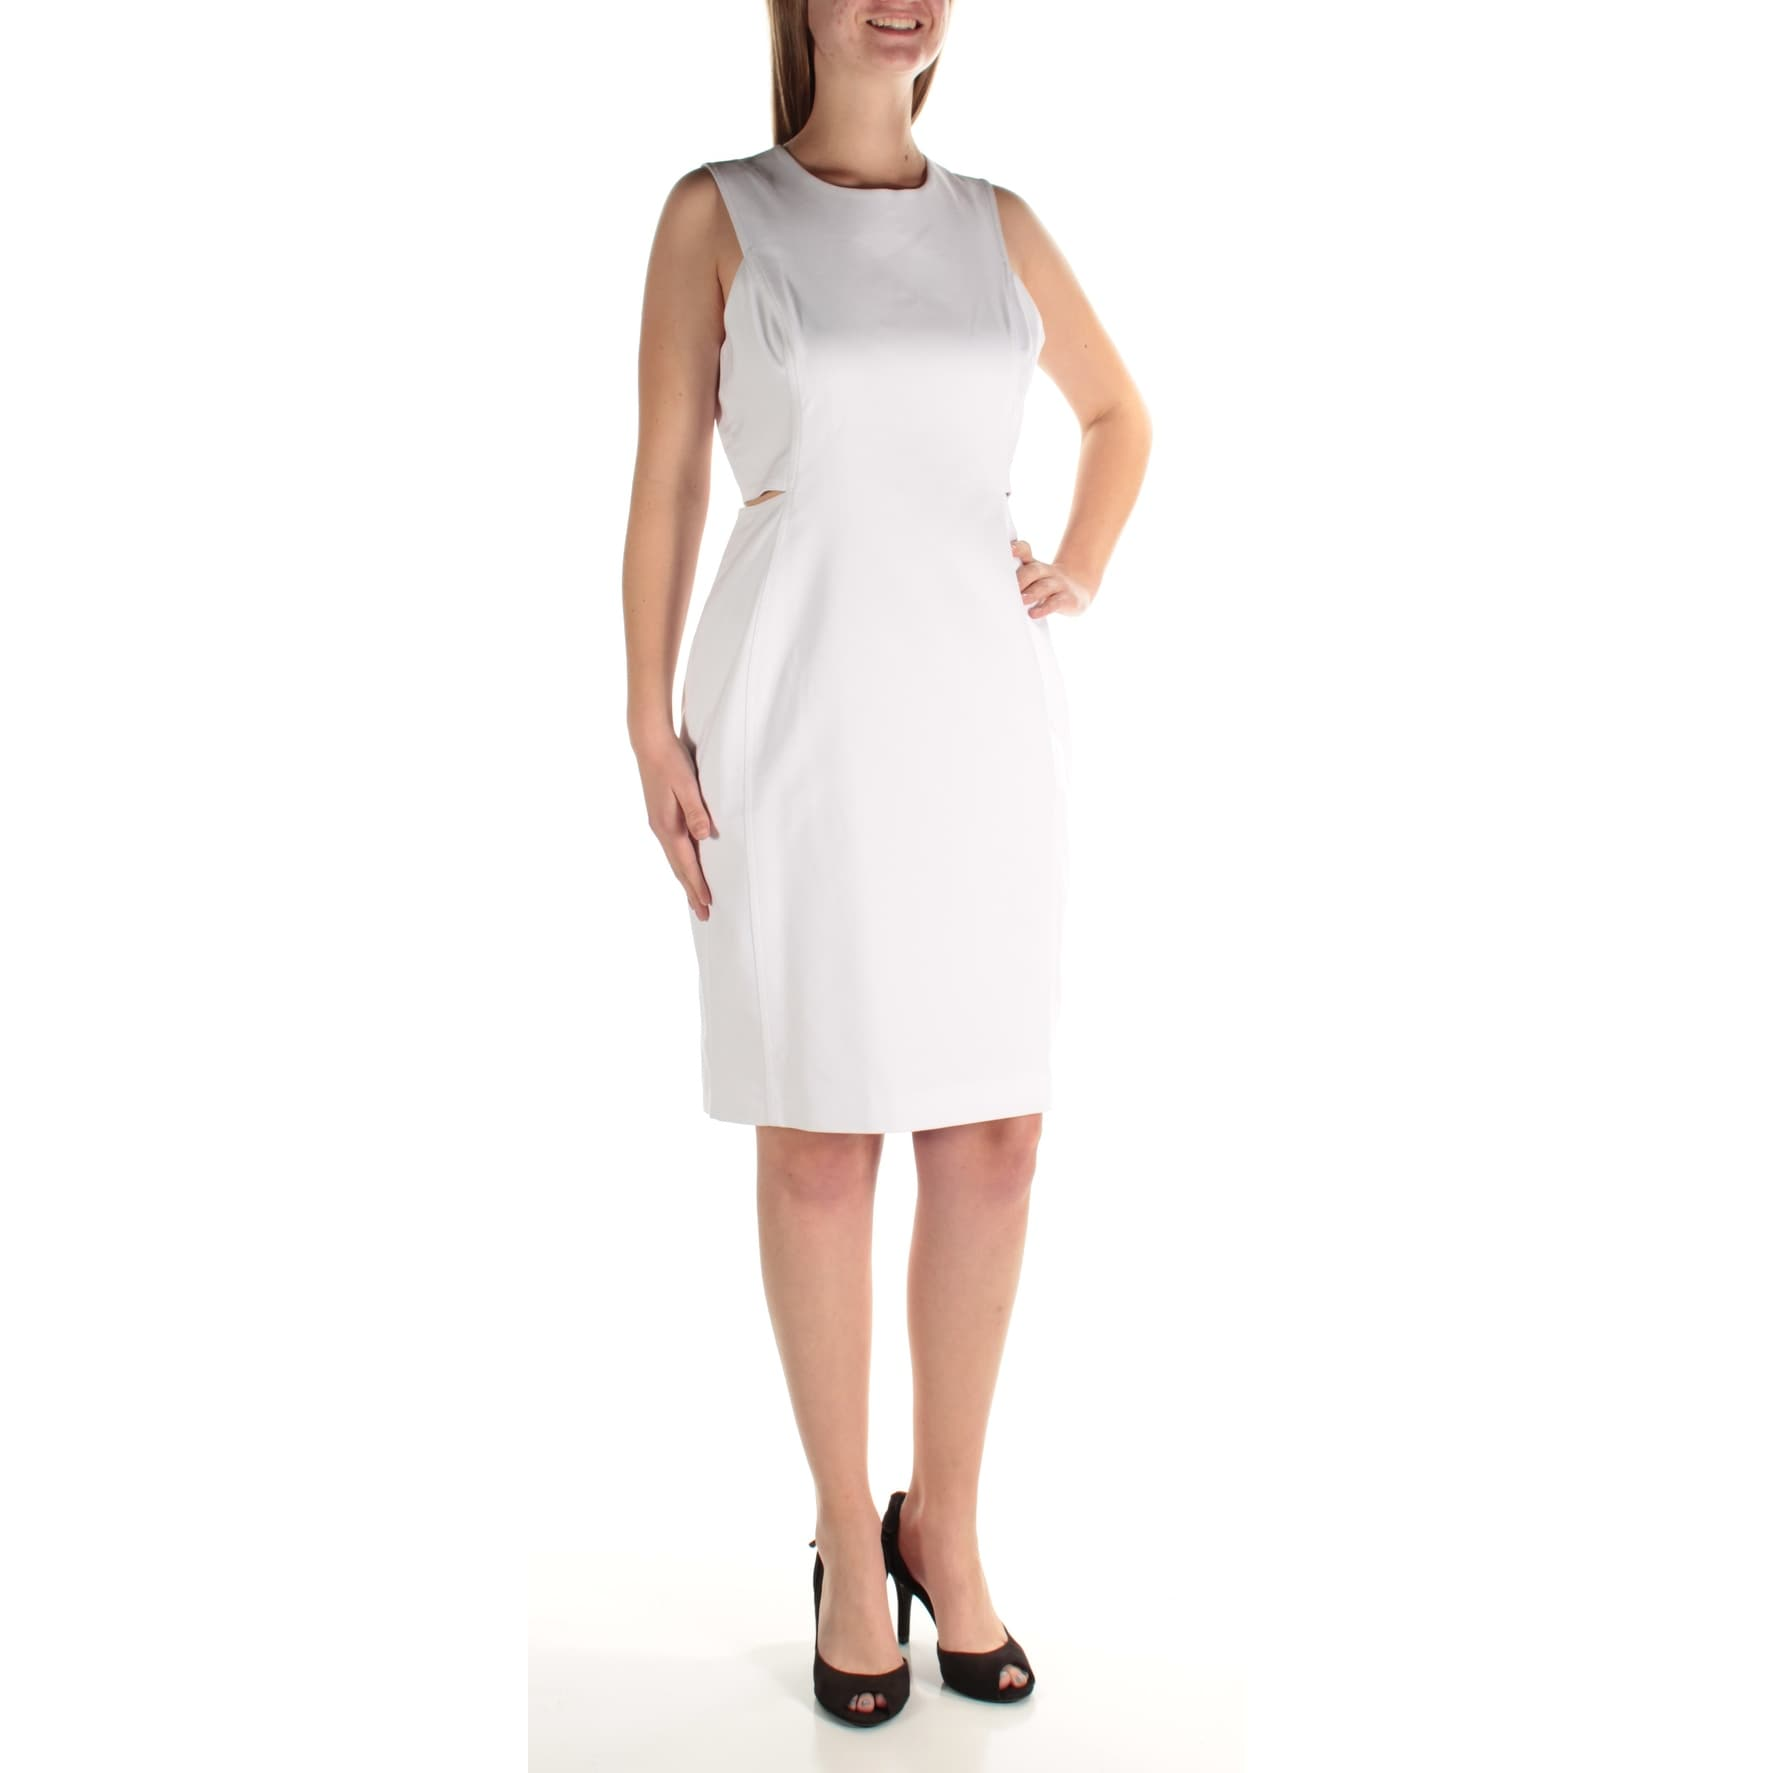 782d0de9 Shop CALVIN KLEIN Womens White Sleeveless Crew Neck Knee Length Sheath Wear  To Work Dress Size: 10 - Free Shipping On Orders Over $45 - Overstock -  21273390